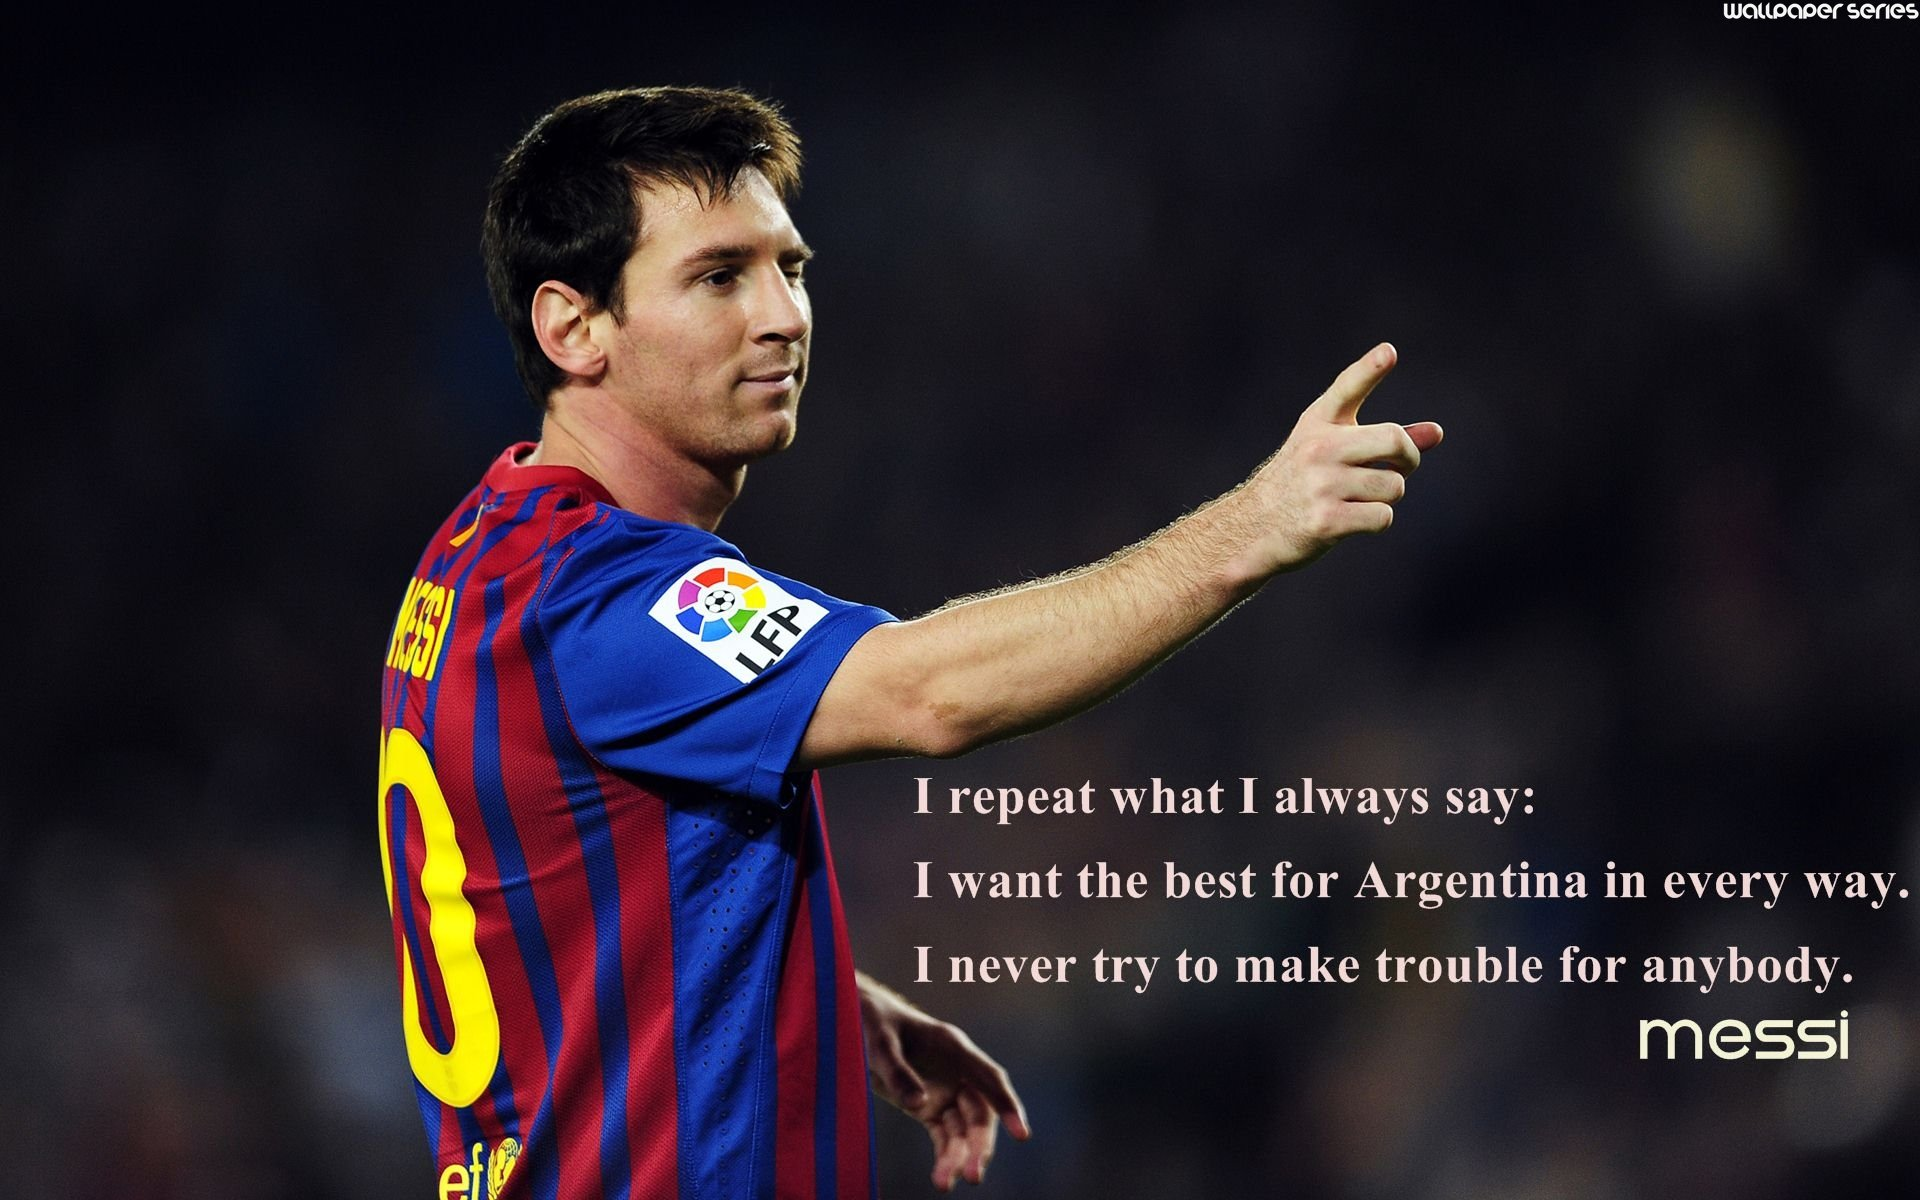 Lionel Messi Best Motivational Quotes Wallpaper - Quotes On Barcelona Fc , HD Wallpaper & Backgrounds